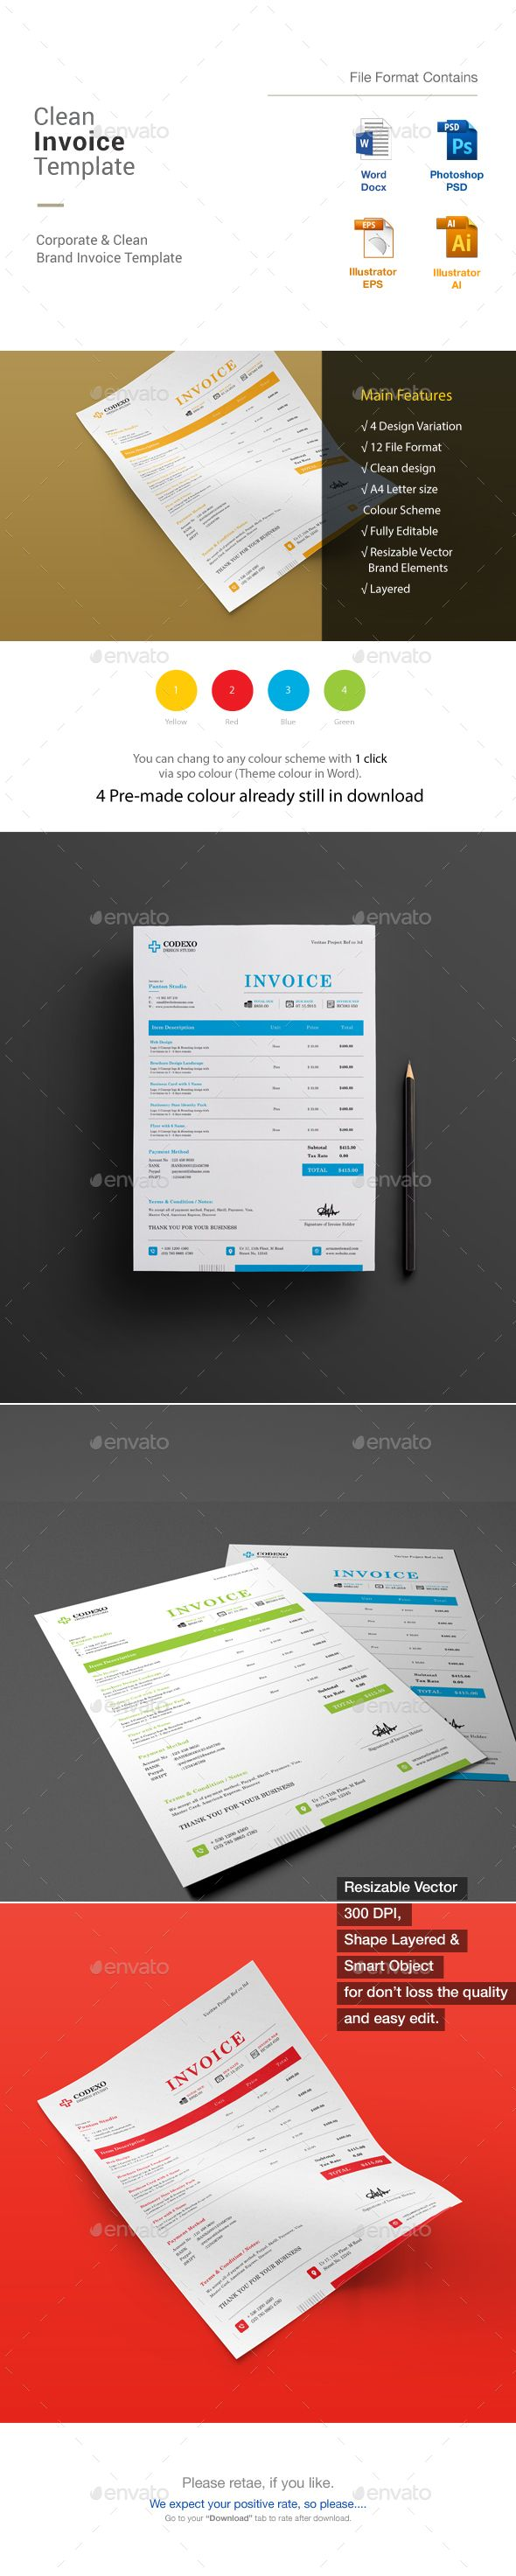 Clean Invoice Template PSD, Vector EPS, AI, MS Word